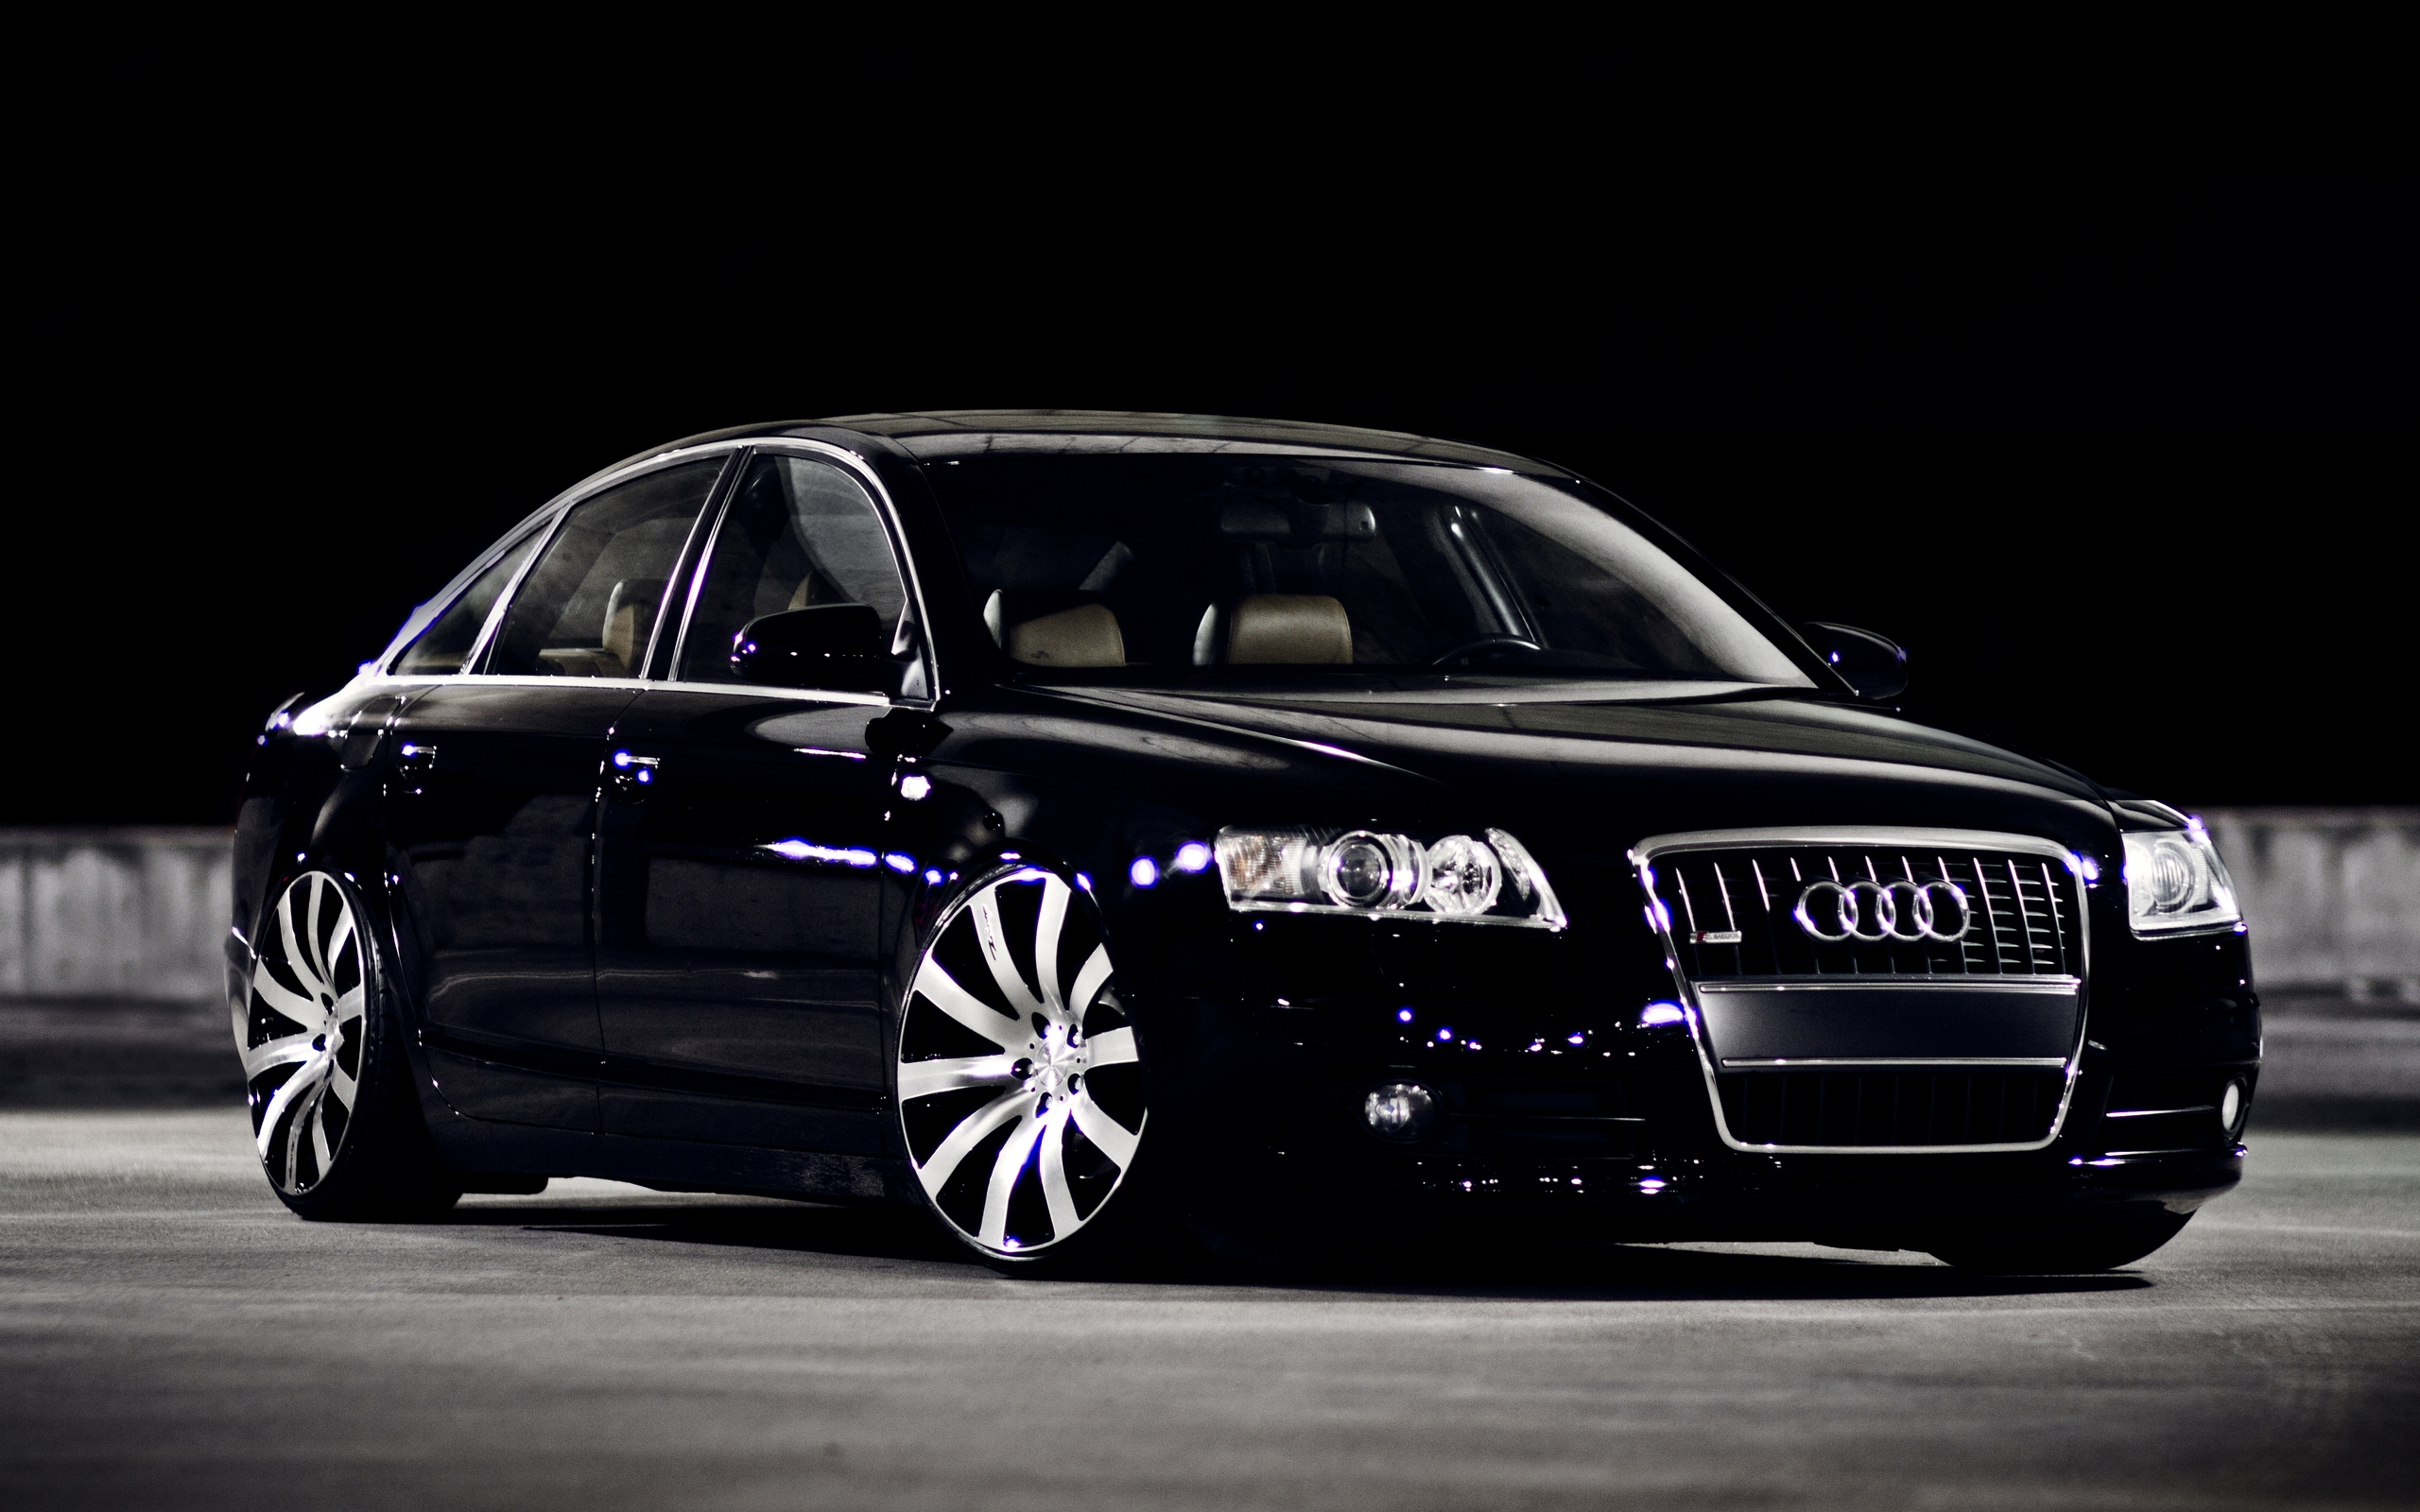 Superbe Audi Cars Wallpaper PC